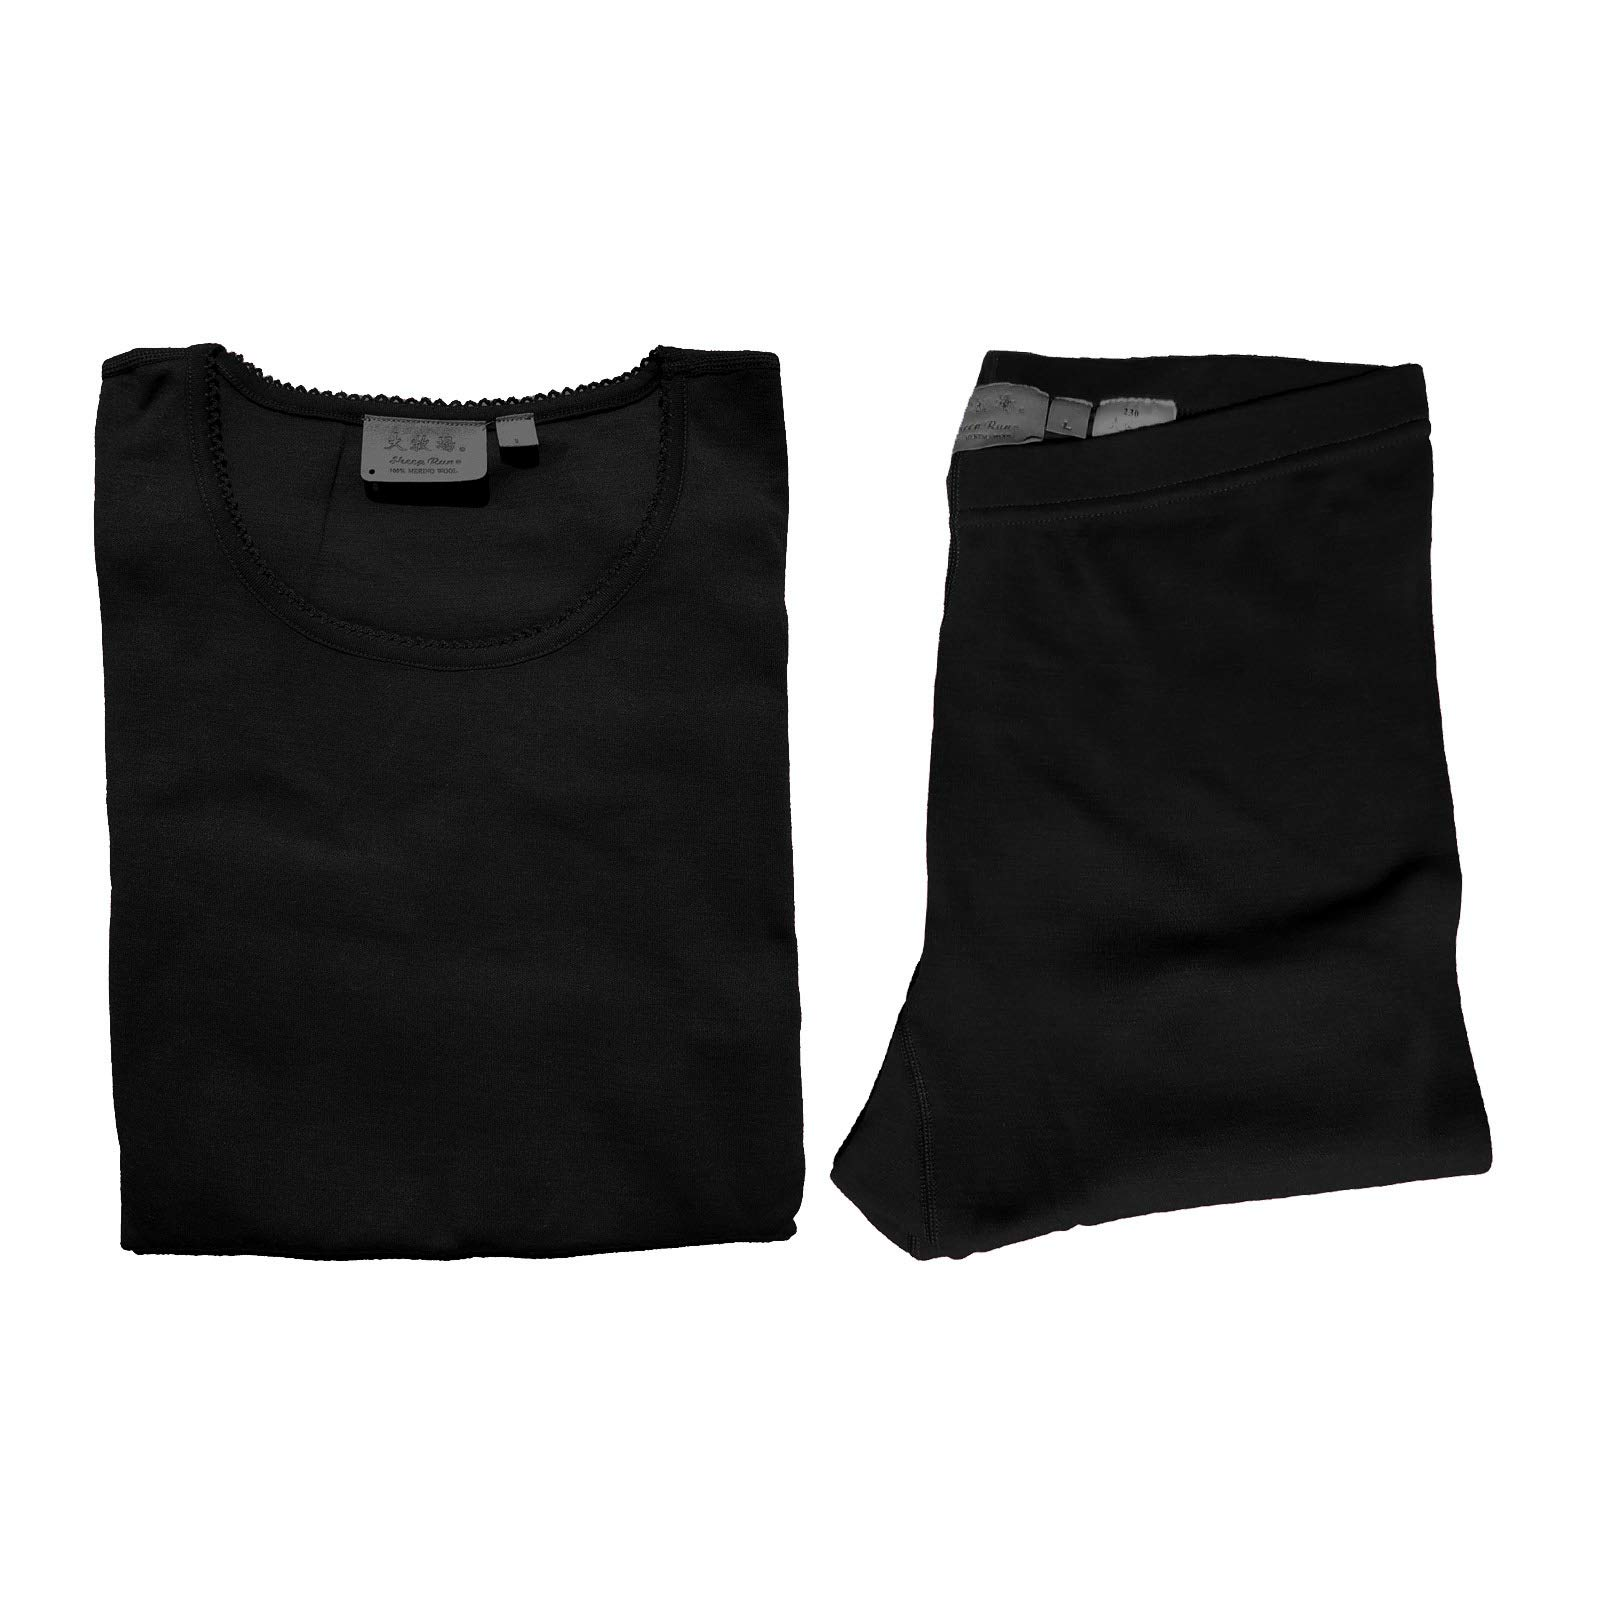 Sheep Run Womens 100% Merino Wool Thermal Underwear Top and Pants (Black, Large) by Sheep Run